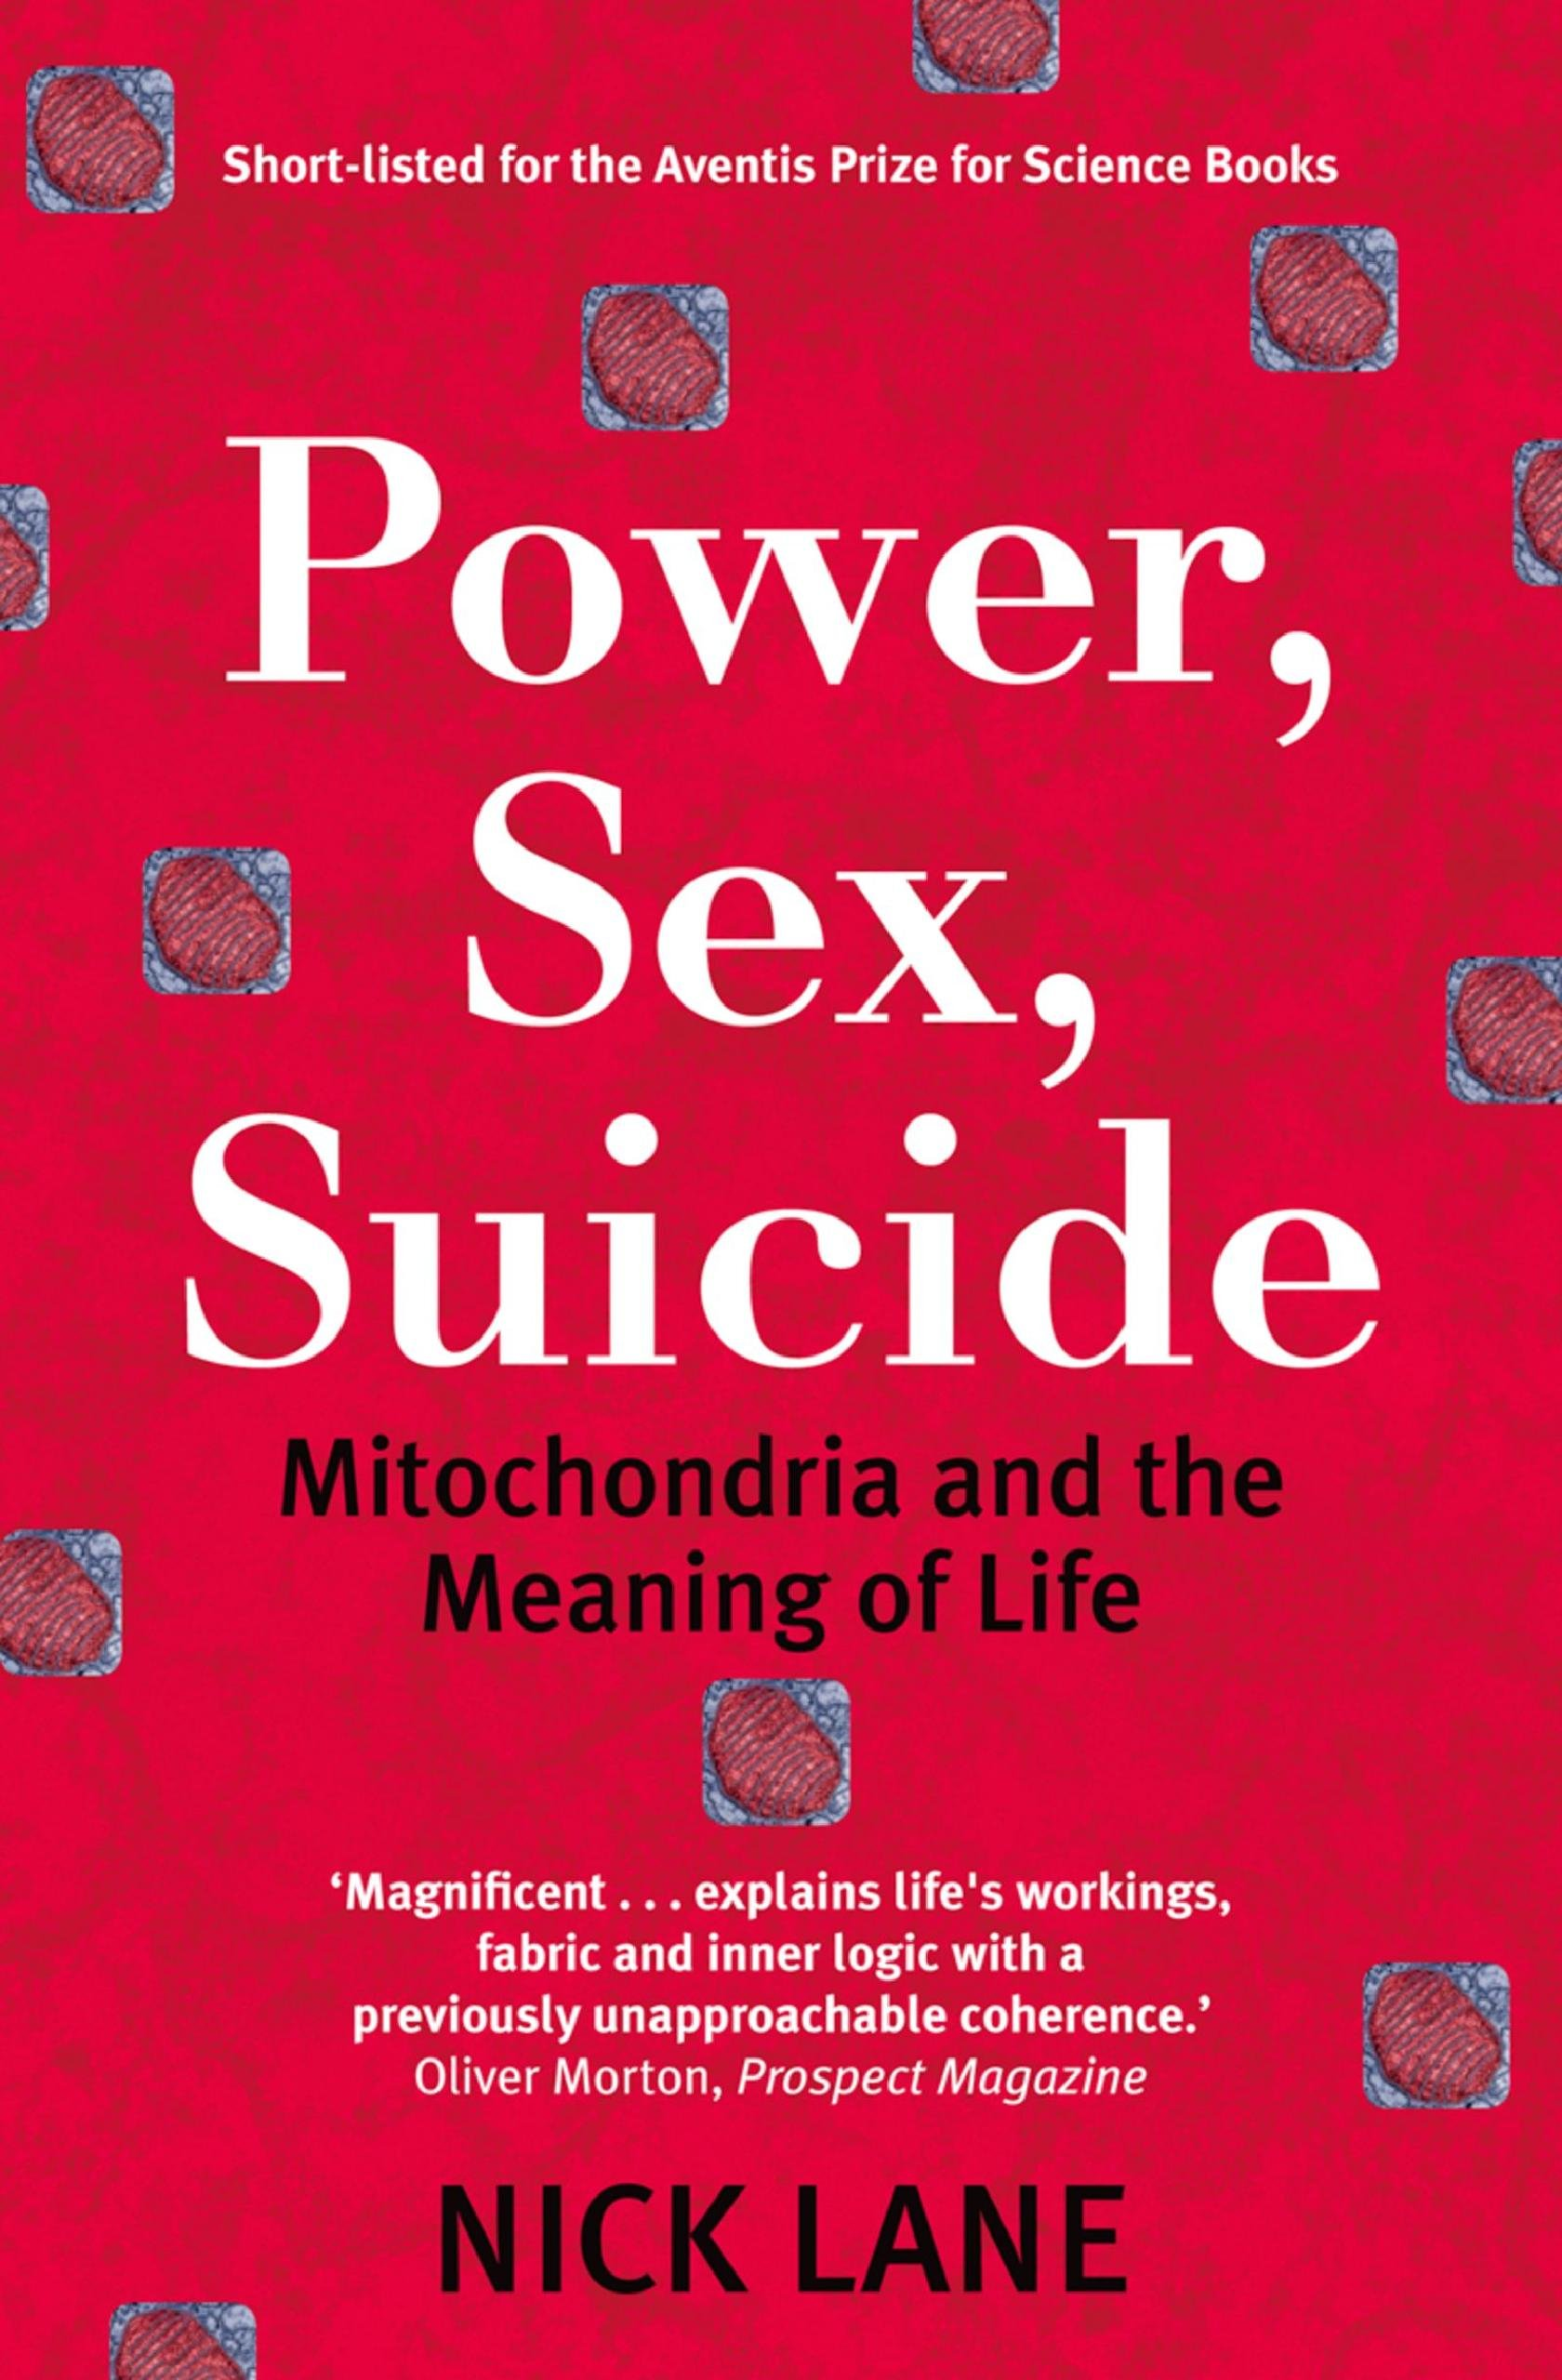 Book cover: Power, Sex, suicide. Mitochondria and the meaning of life